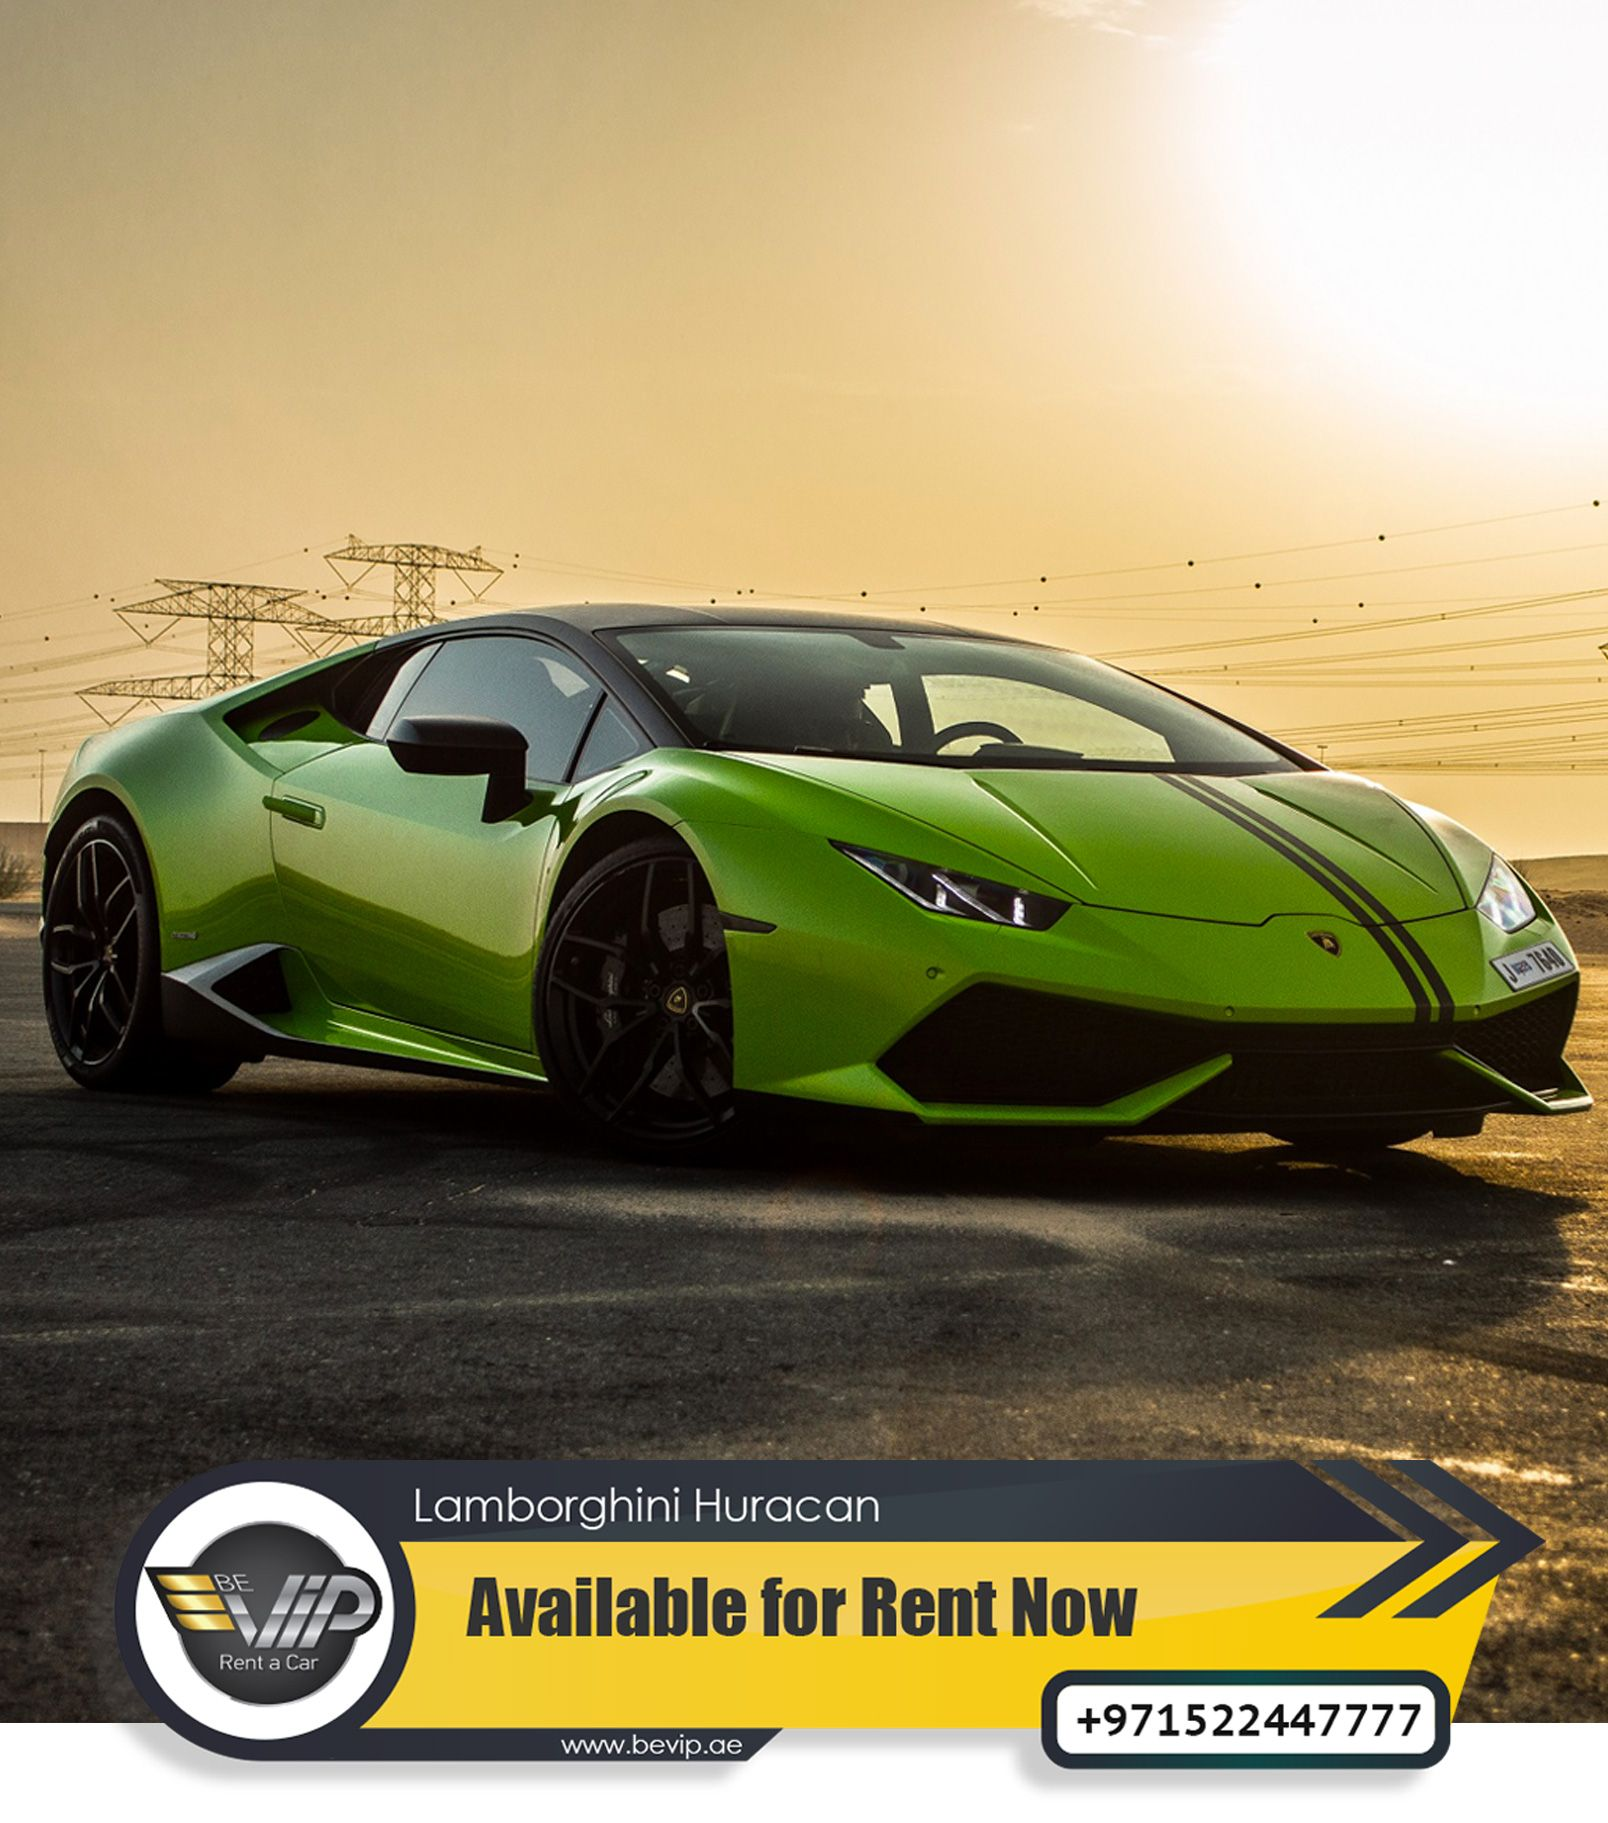 The Lamborghini Huracan Spyder For Rent In Dubai Lamborghini